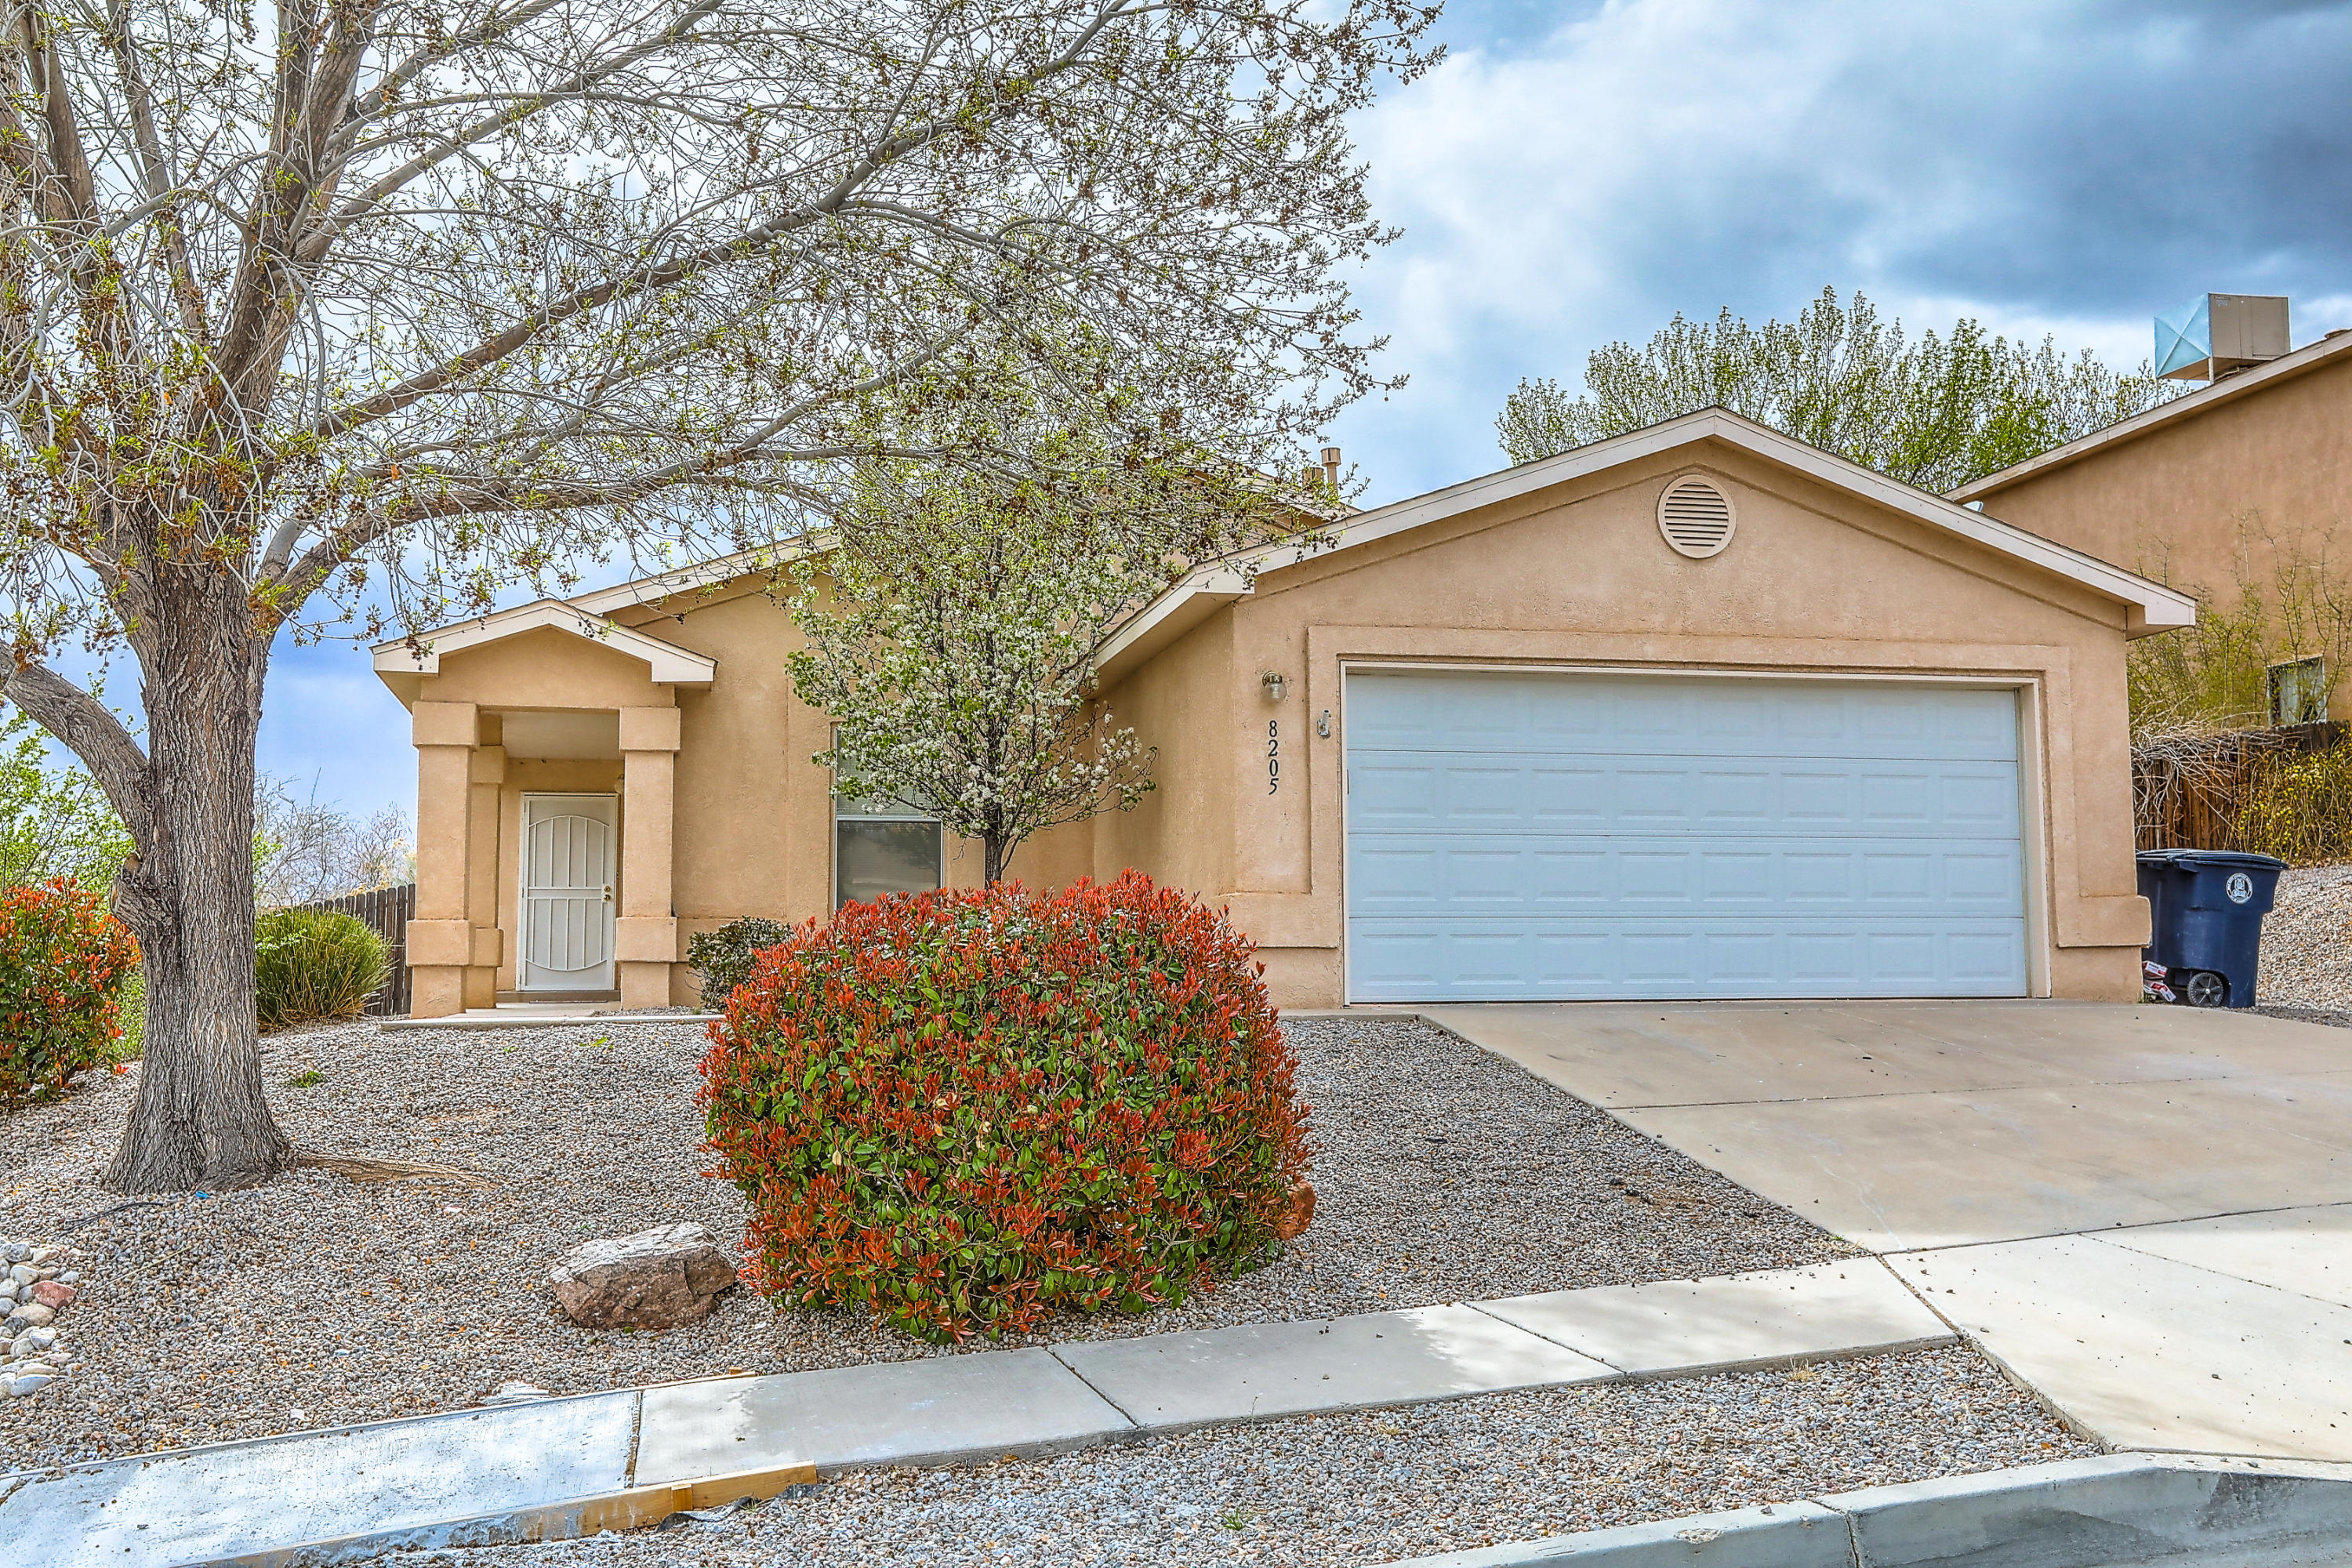 8205 NW Rancho Seguro, Northwest Albuquerque and Northwest Heights, New Mexico